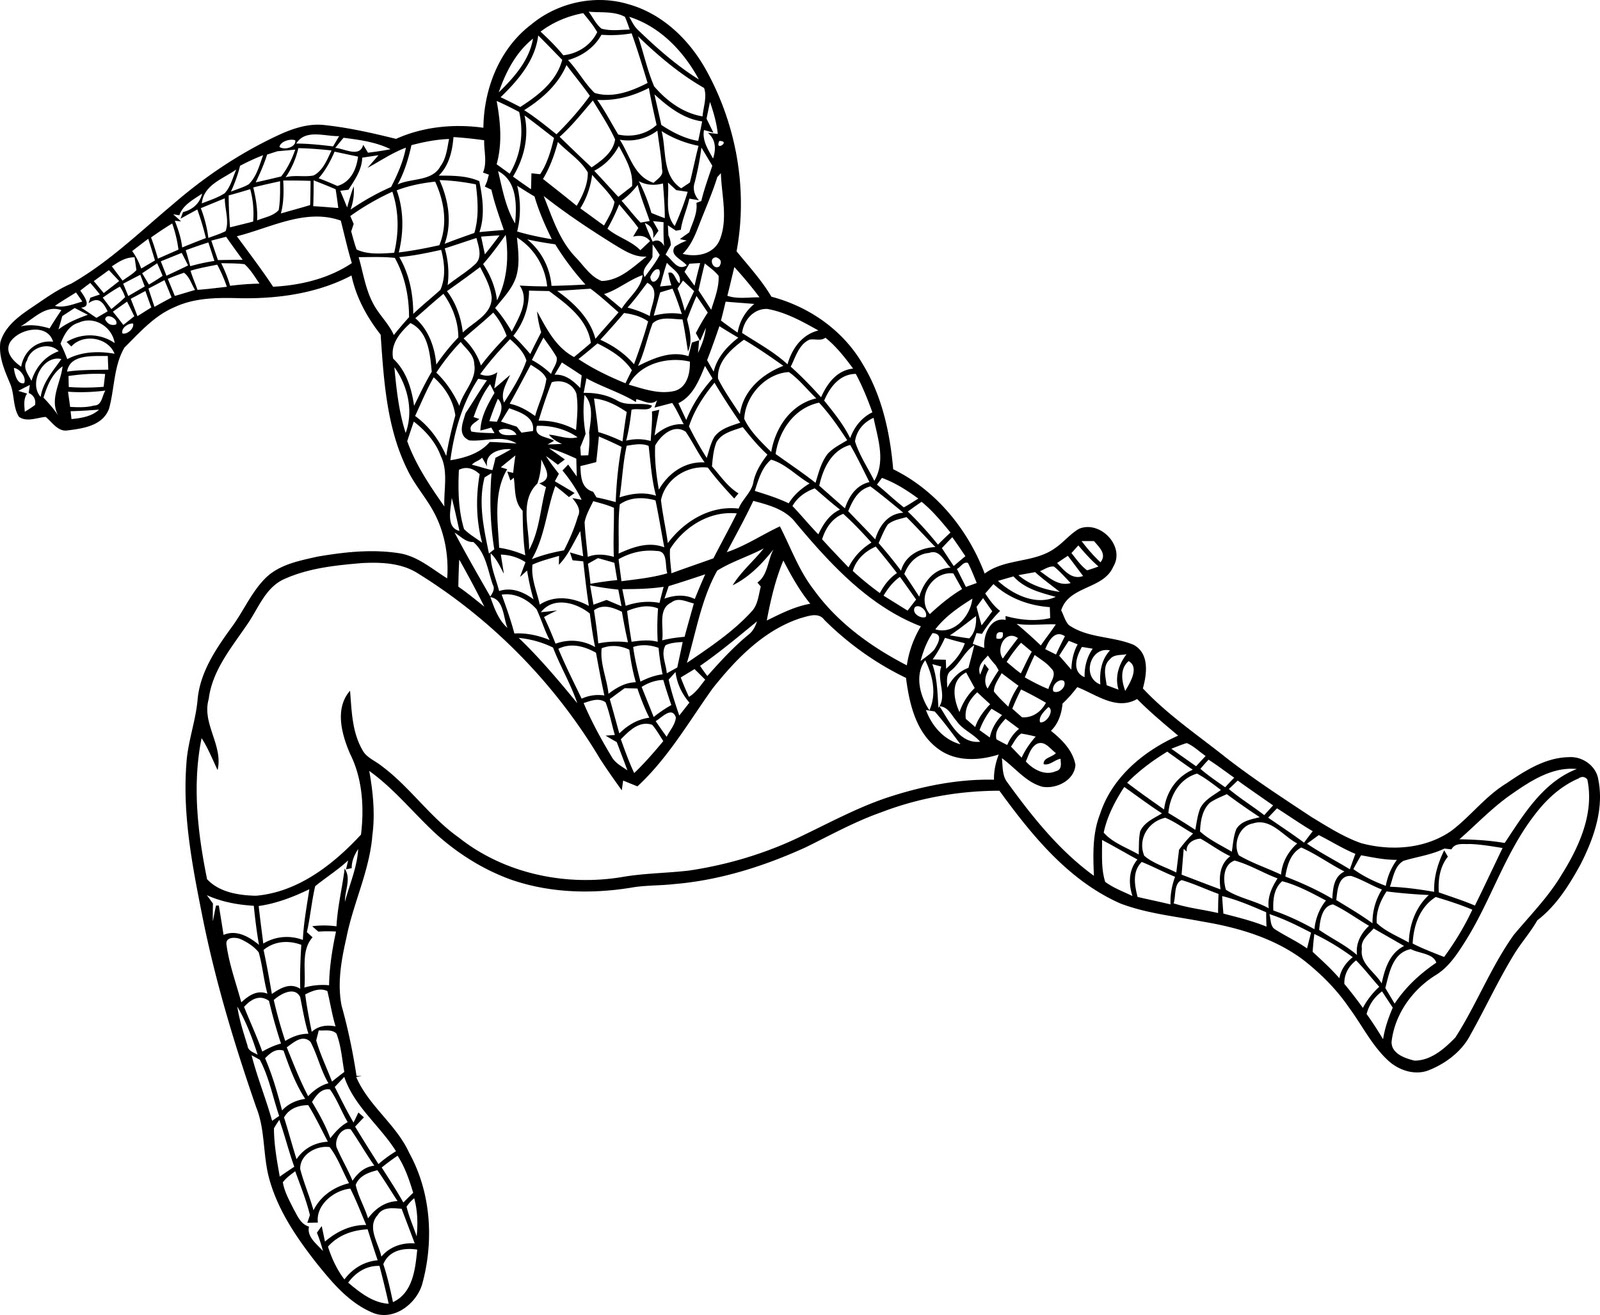 coloring spiderman for kids spiderman to color for kids spiderman kids coloring pages spiderman coloring for kids